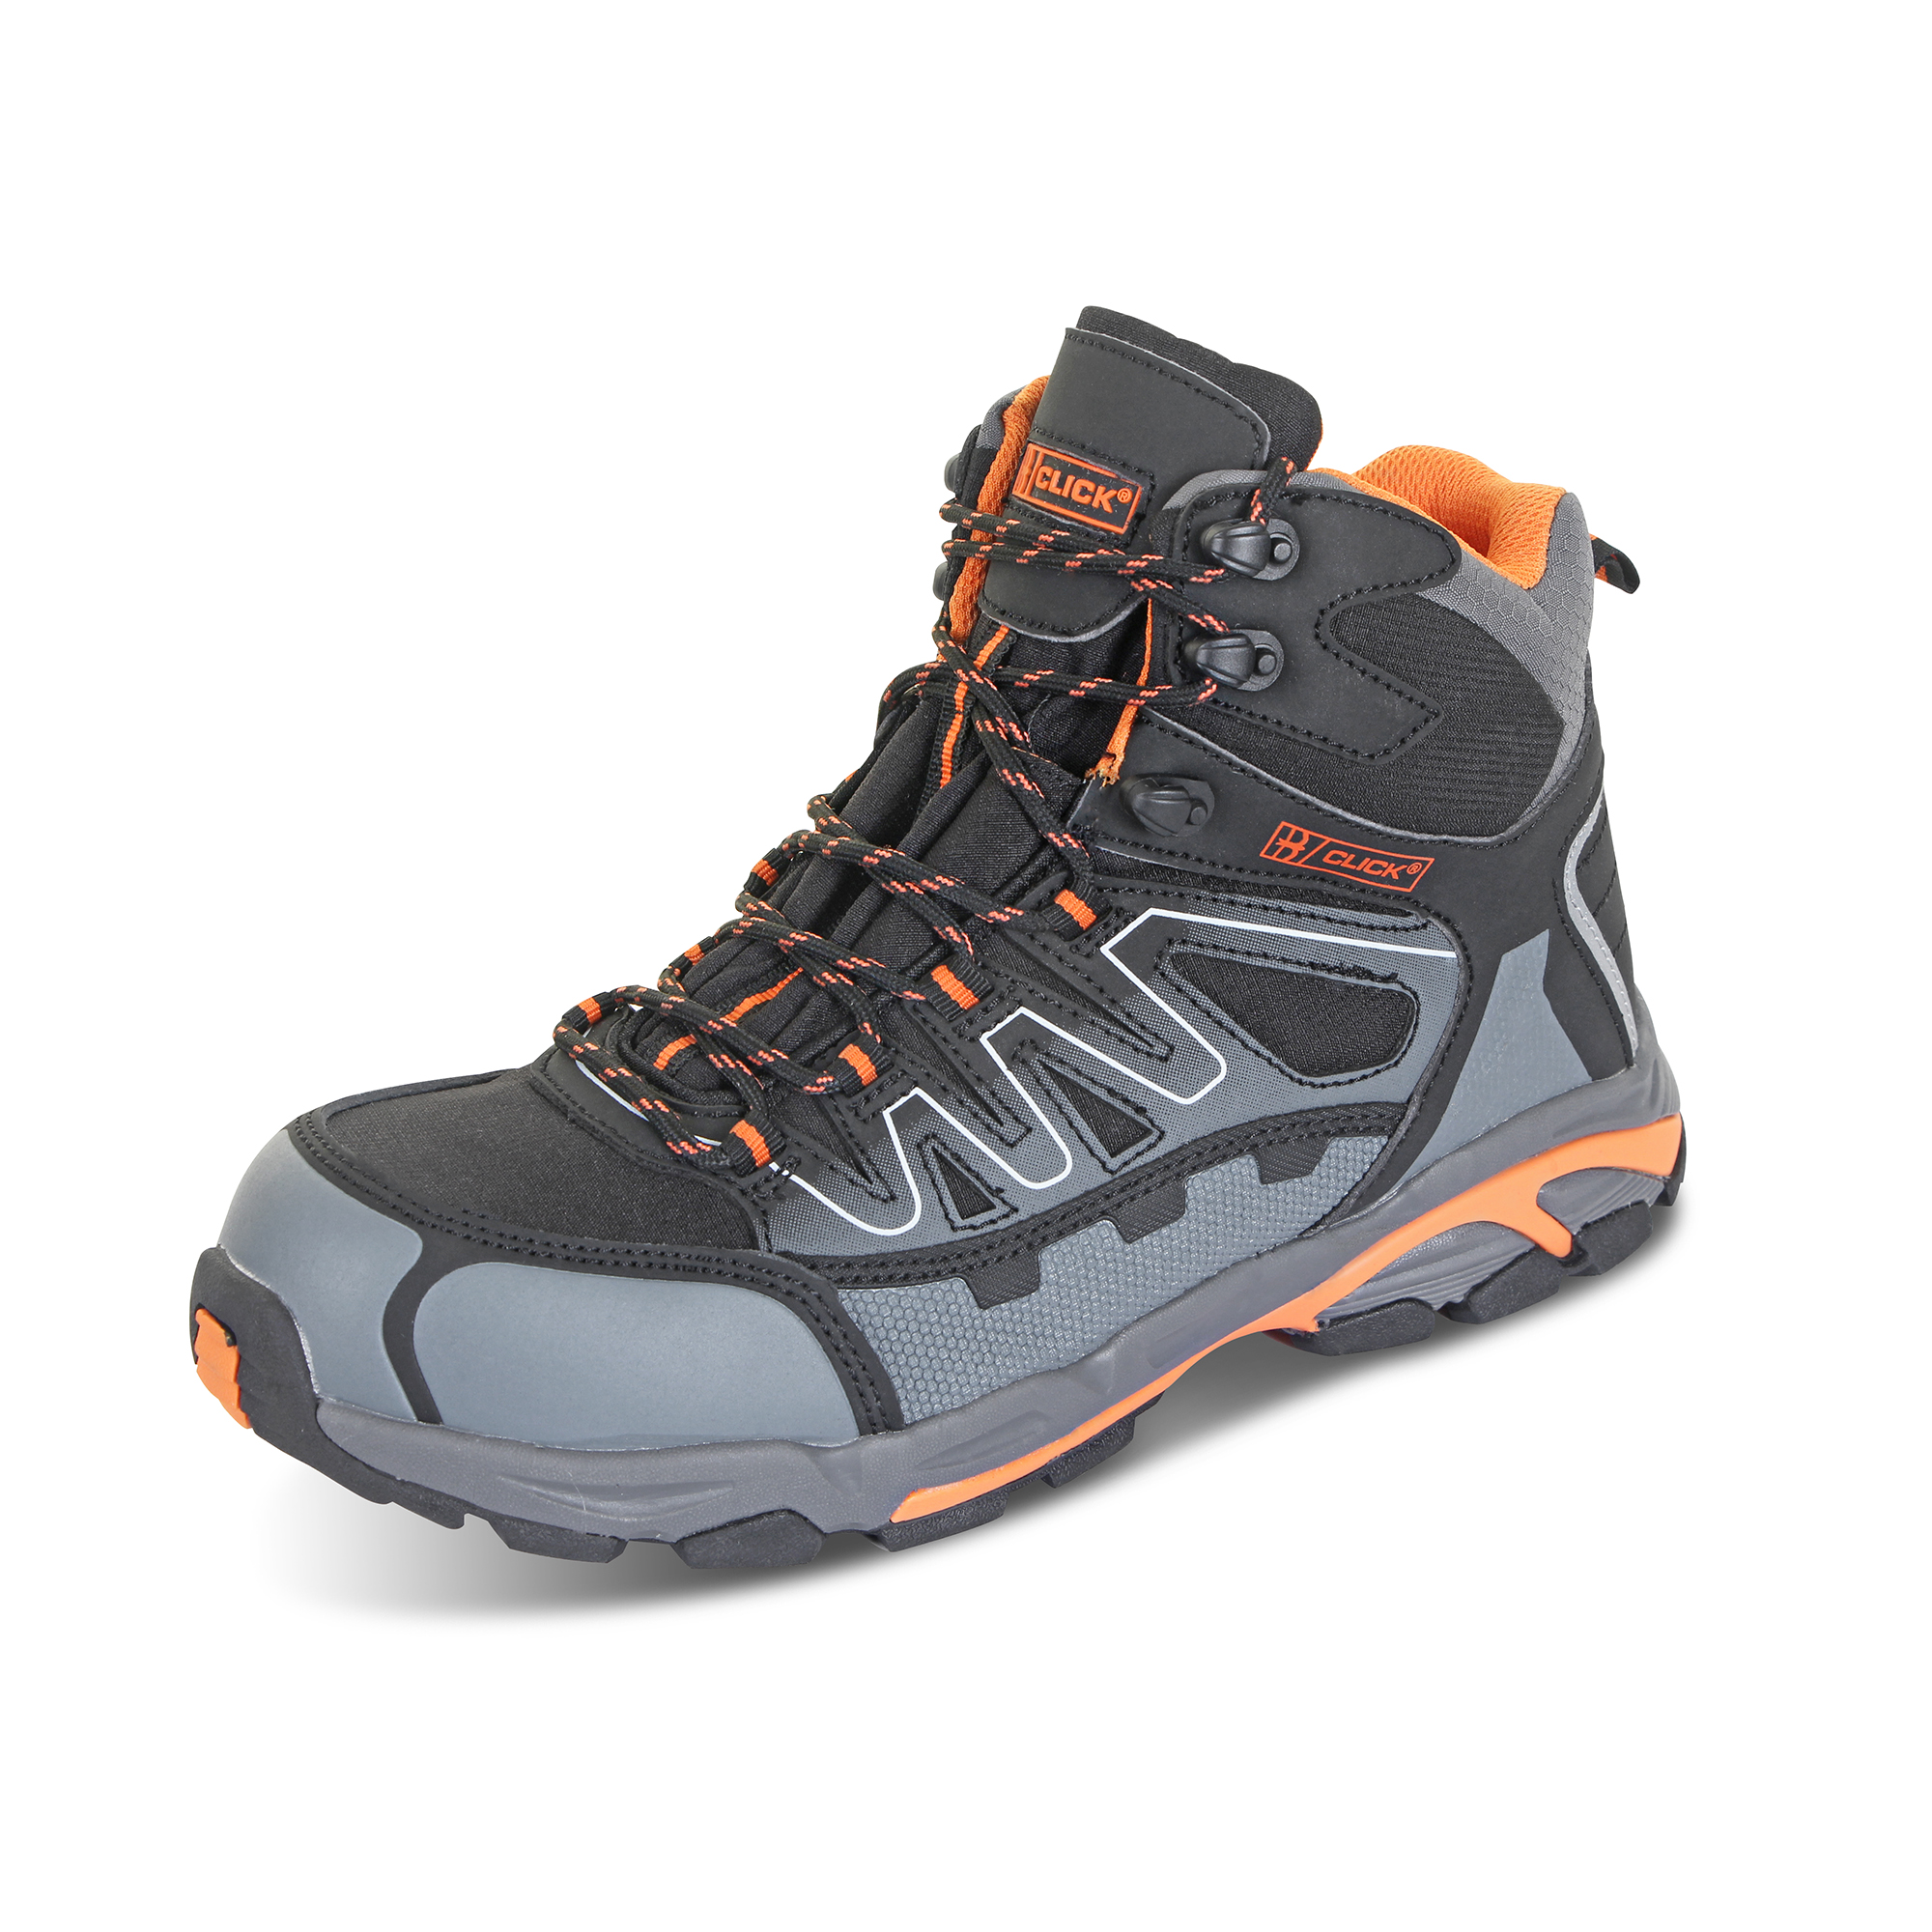 Limitless Click Footwear Leather S3 Hiker Boot Composite Toe Size 5 Black/Grey Ref CF3505 *Up to 3 Day Leadtime*